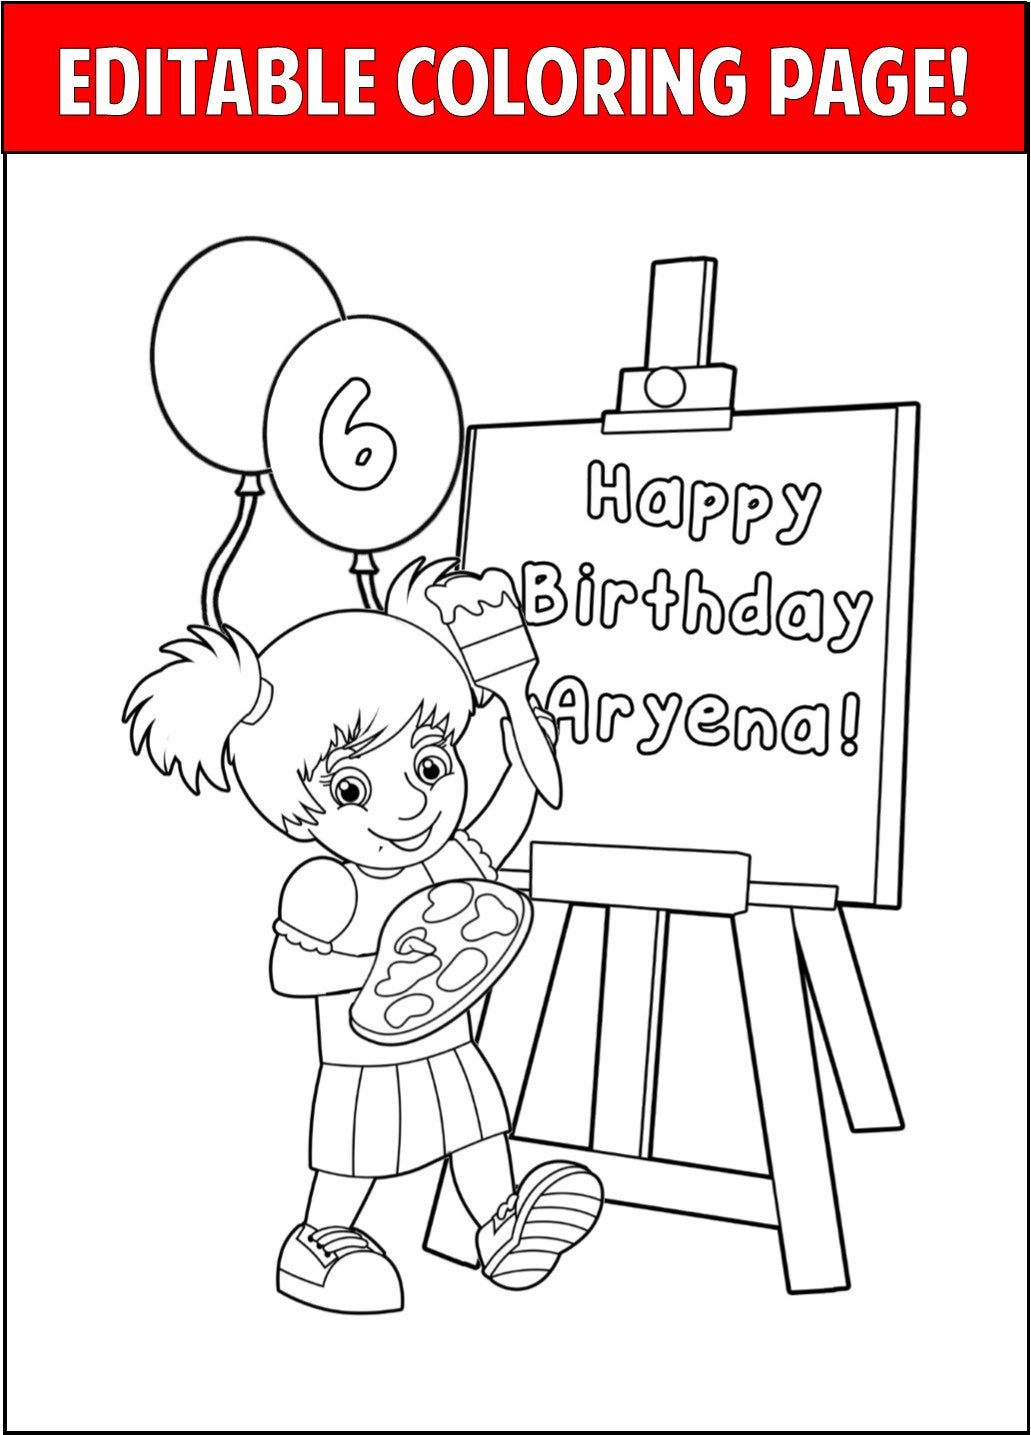 Art Party Personalized Coloring Page  - EDITABLE